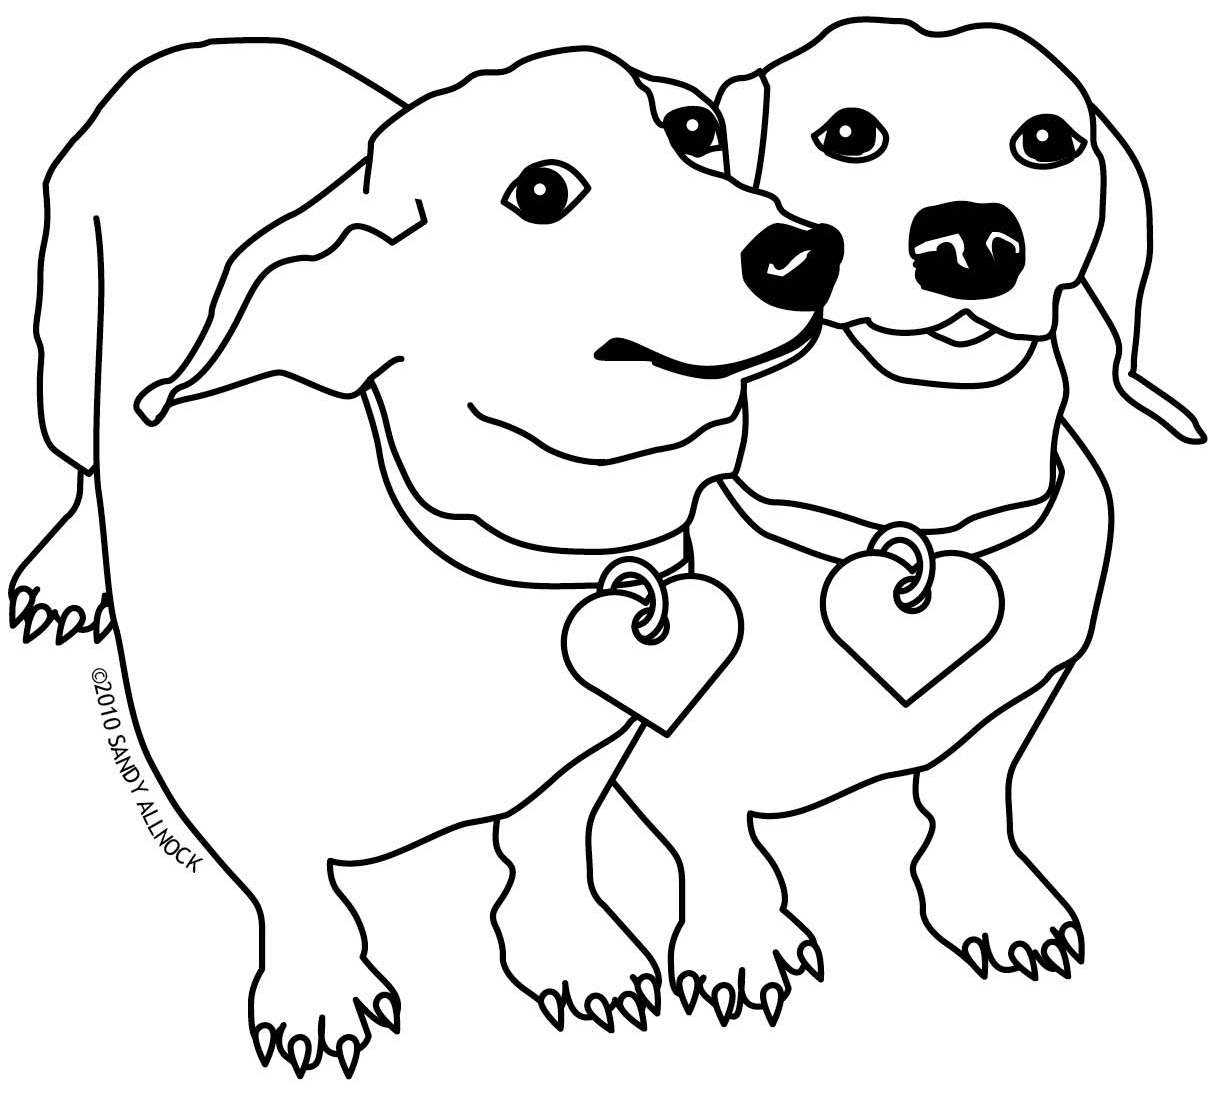 1224x1097 Its A Colourful World Dachshund Coloring Pages